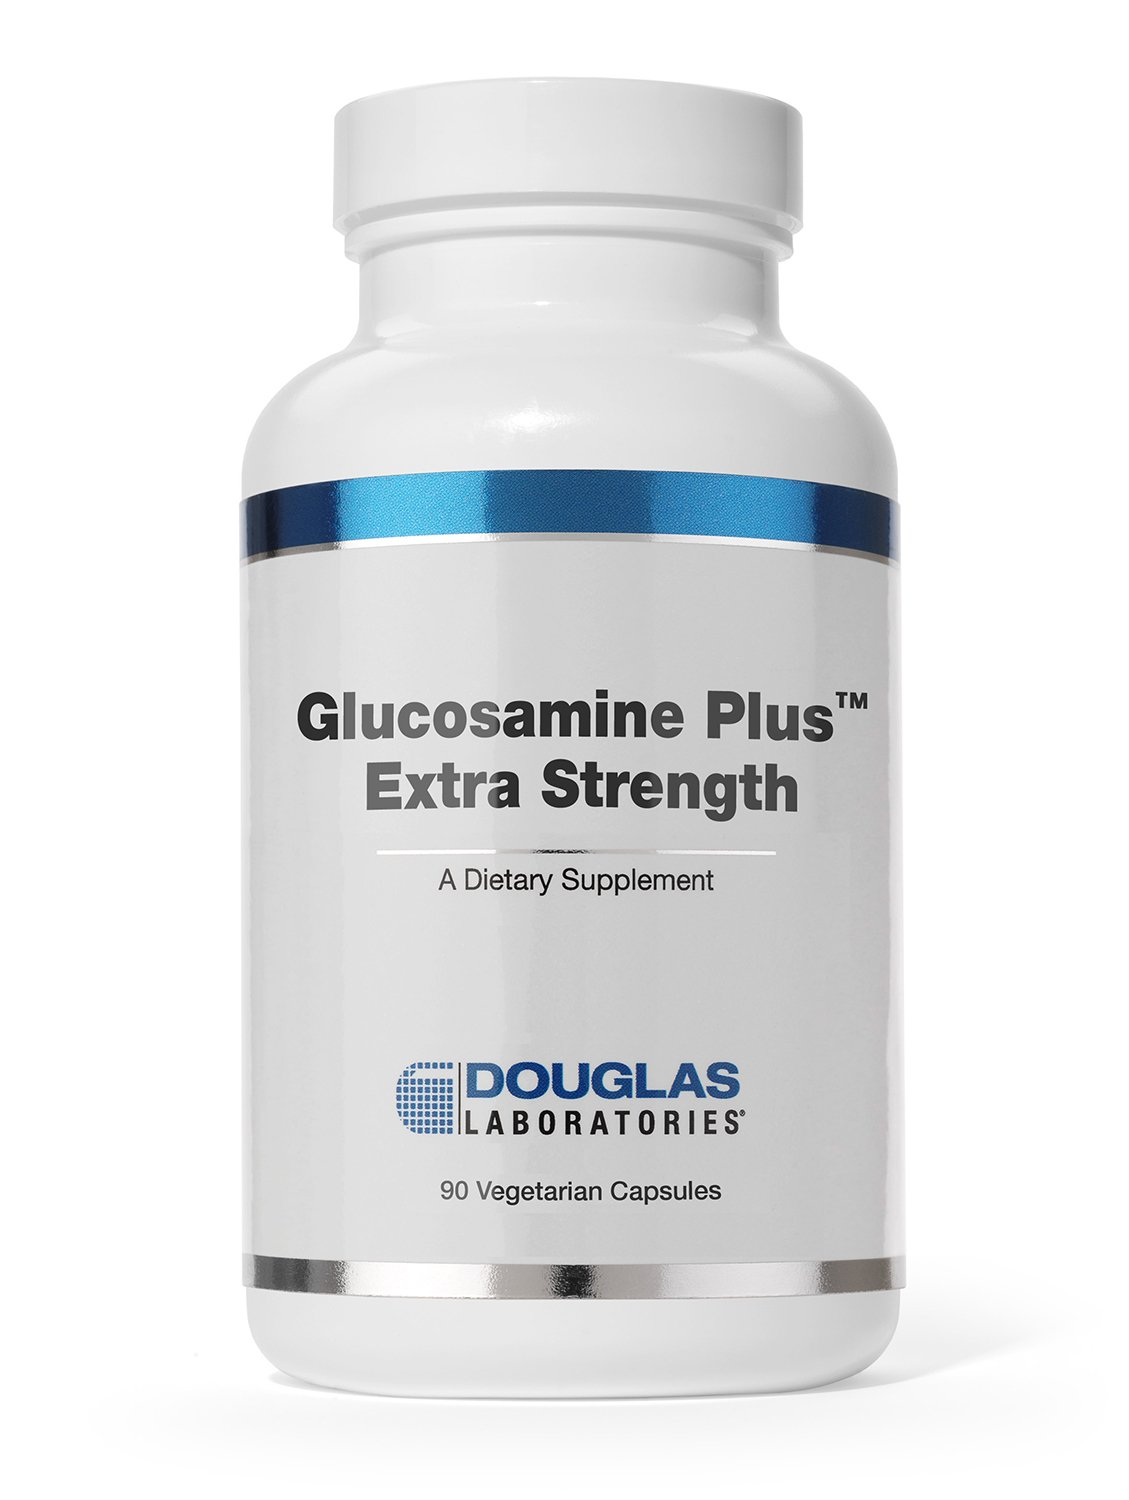 Douglas Laboratories - Glucosamine Plus Extra Strength - Supports Health of Connective Tissues and Joint Cartilage* - 90 Capsules by Douglas Laboratories